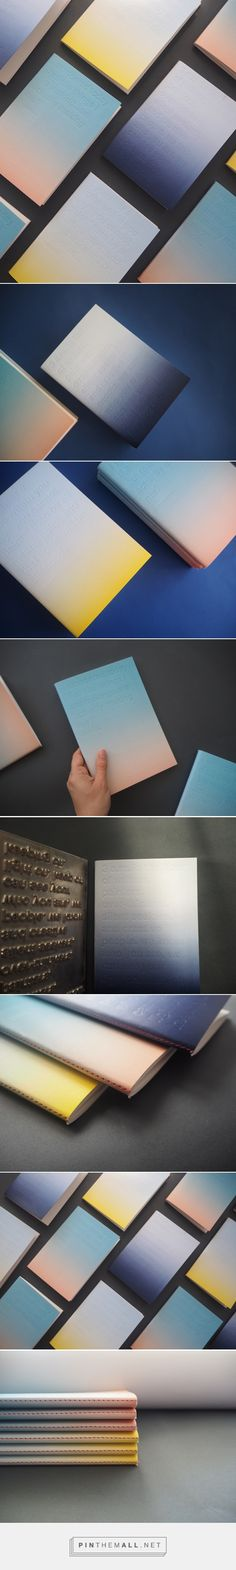 onedesignspace creates color-gradient notebooks series - created via https://pinthemall.net